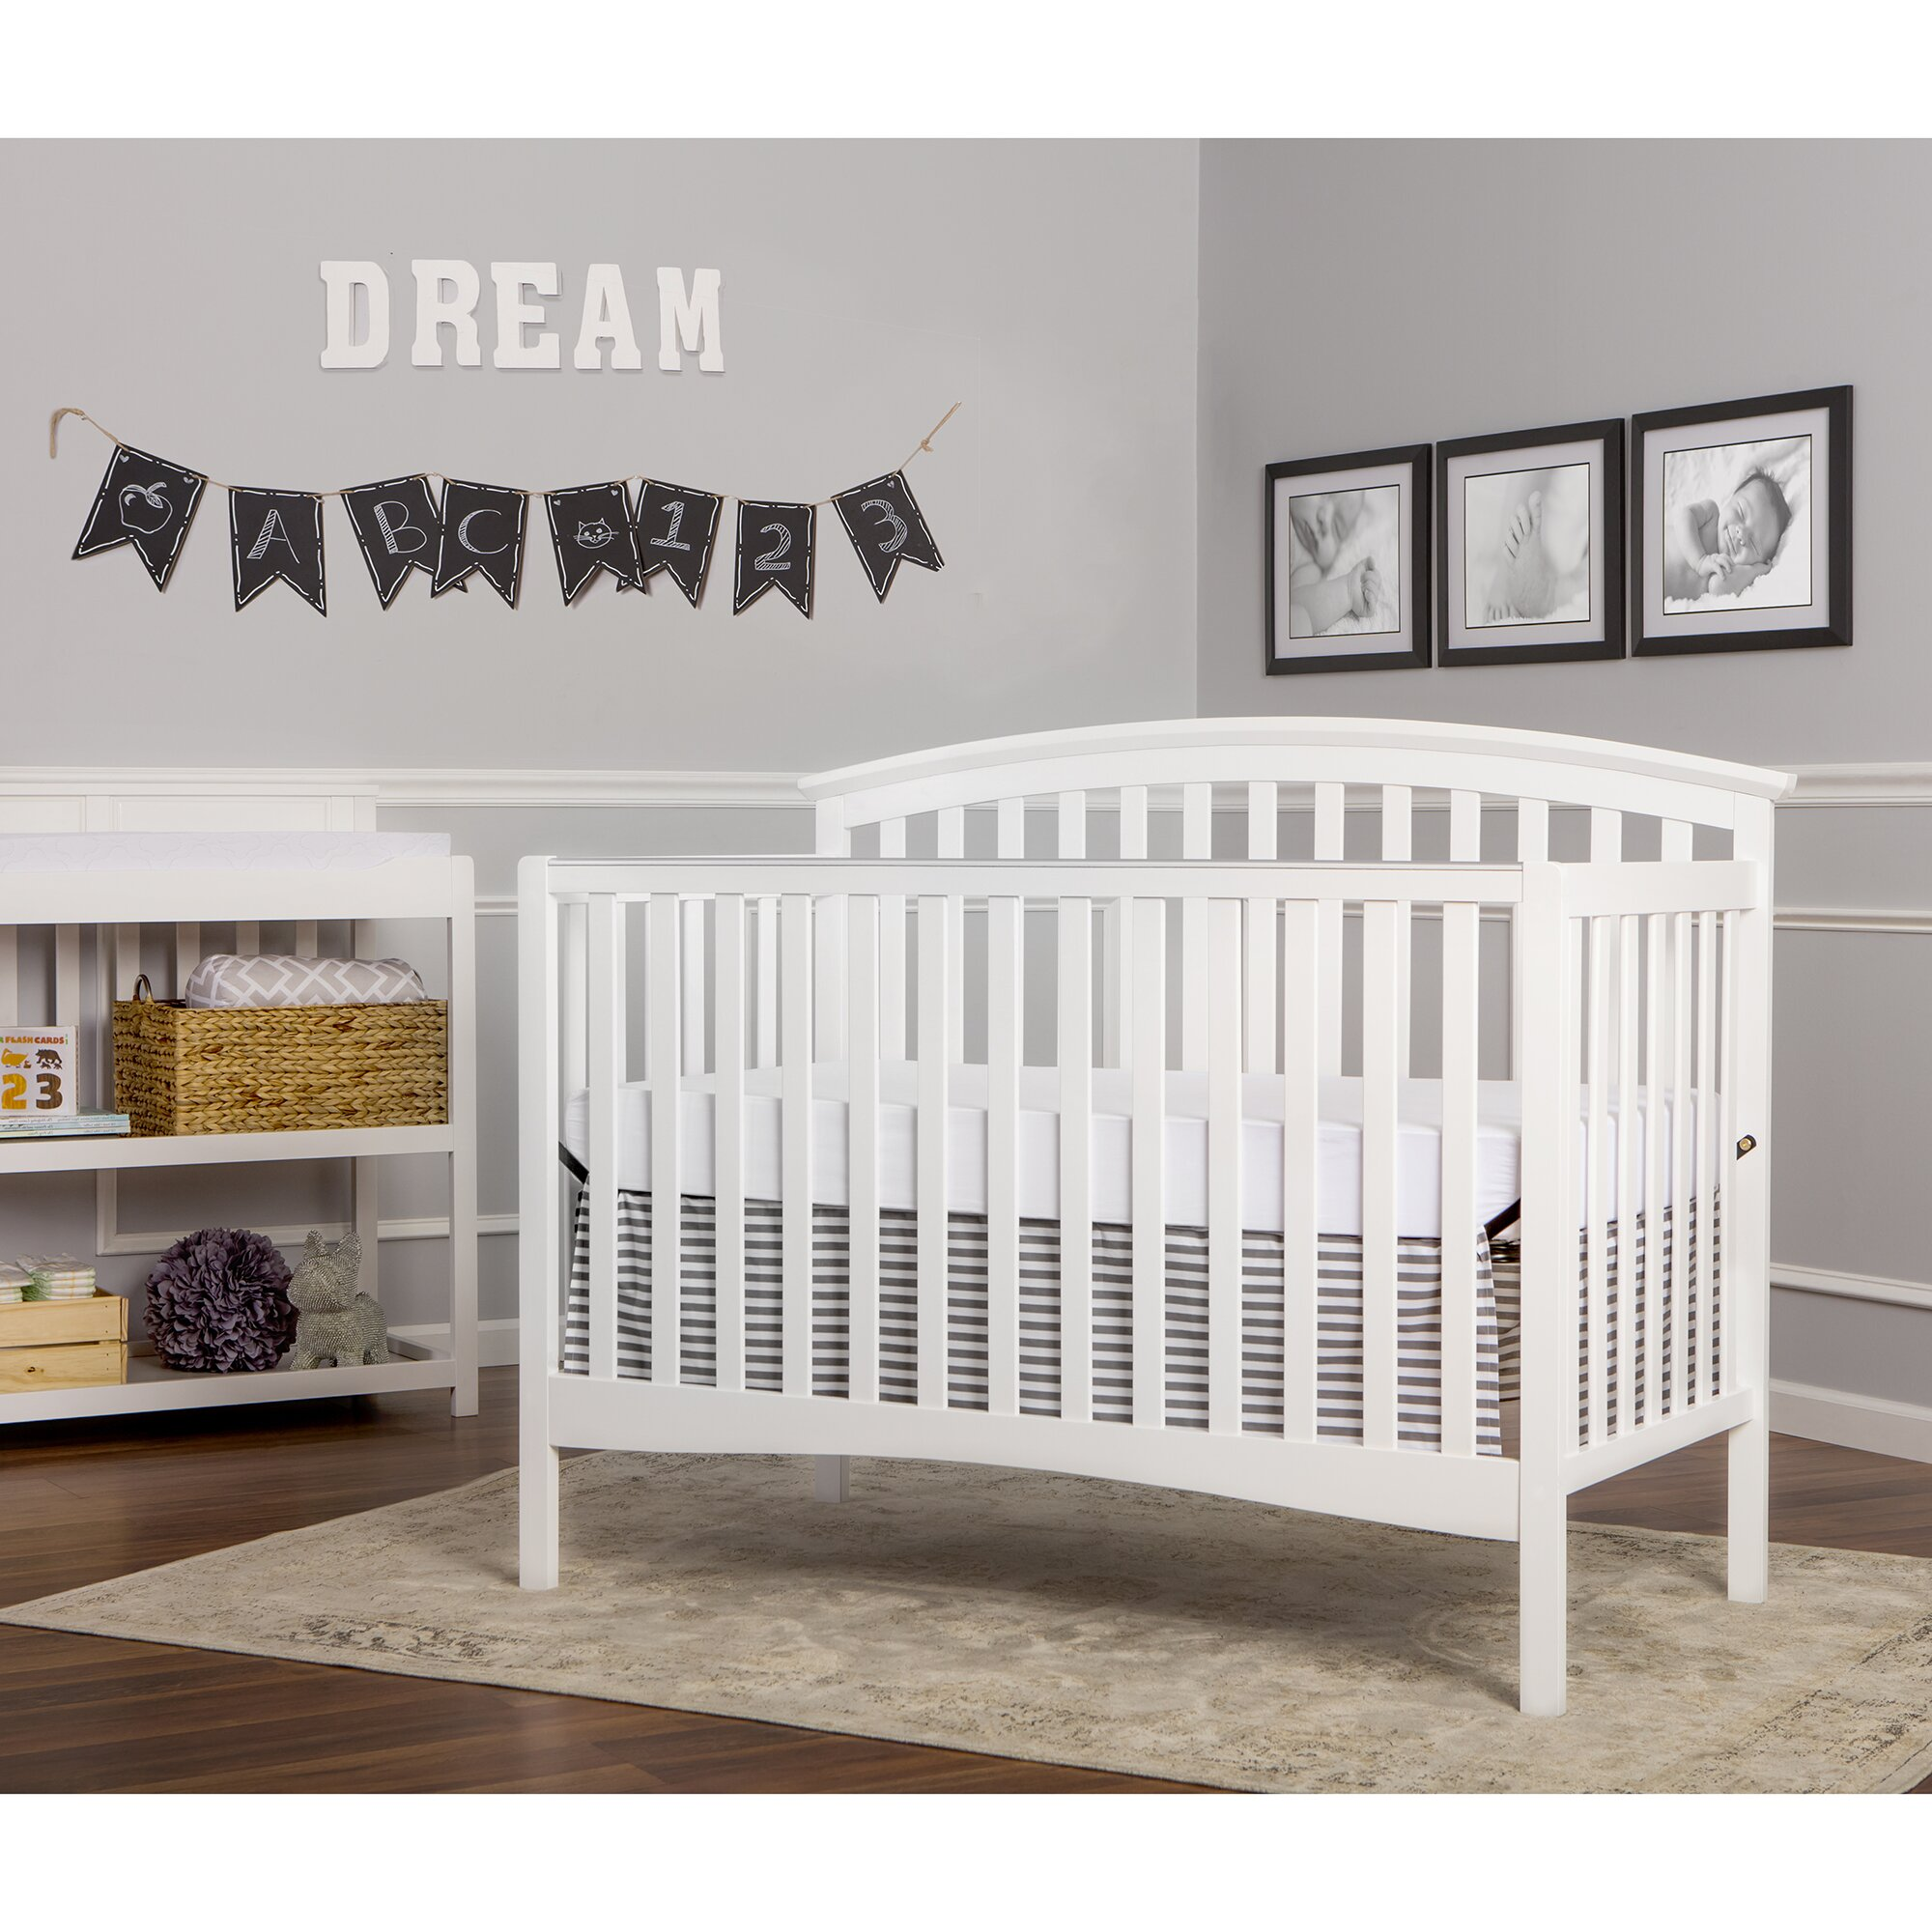 Unfinished crib for sale - Eden 4 In 1 Convertible Crib